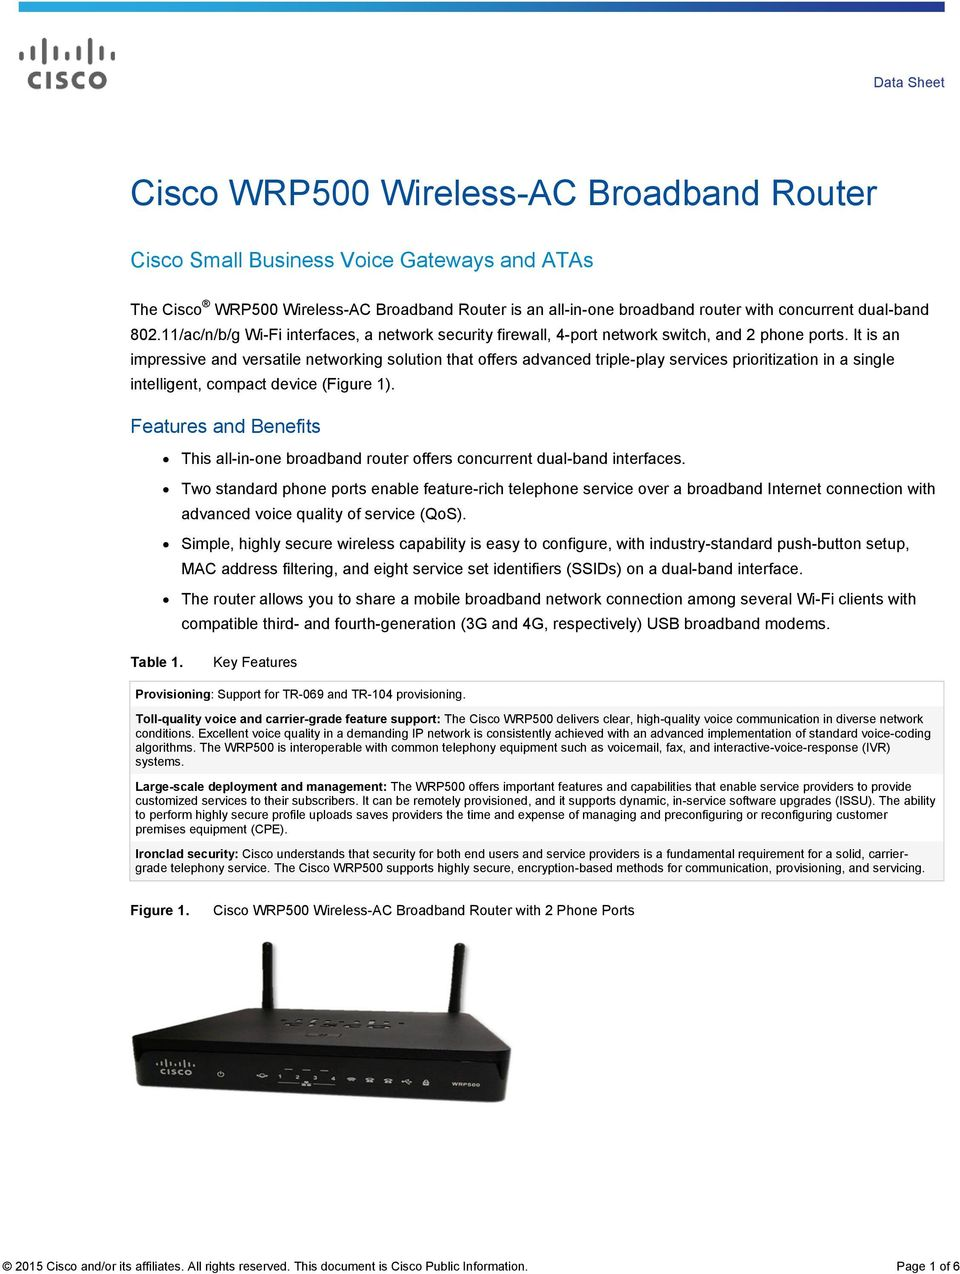 Cisco Wrp500 Wireless Ac Broadband Router - Image Of Router